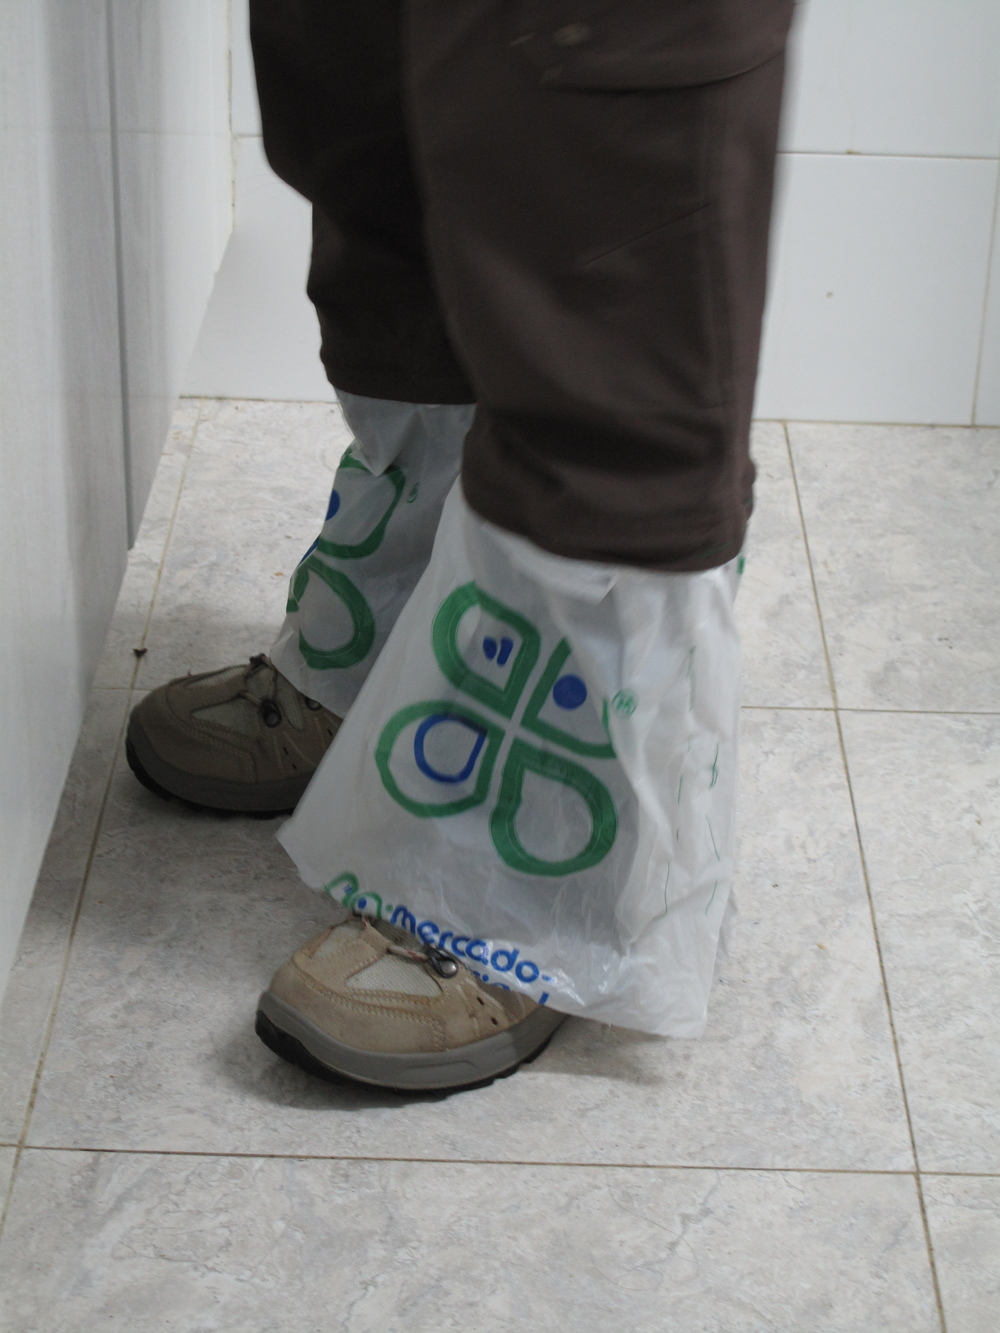 Pilgrims have to get creative when walking the Camino.  This pilgrim made gaiters out of grocery store bags.  Genius!